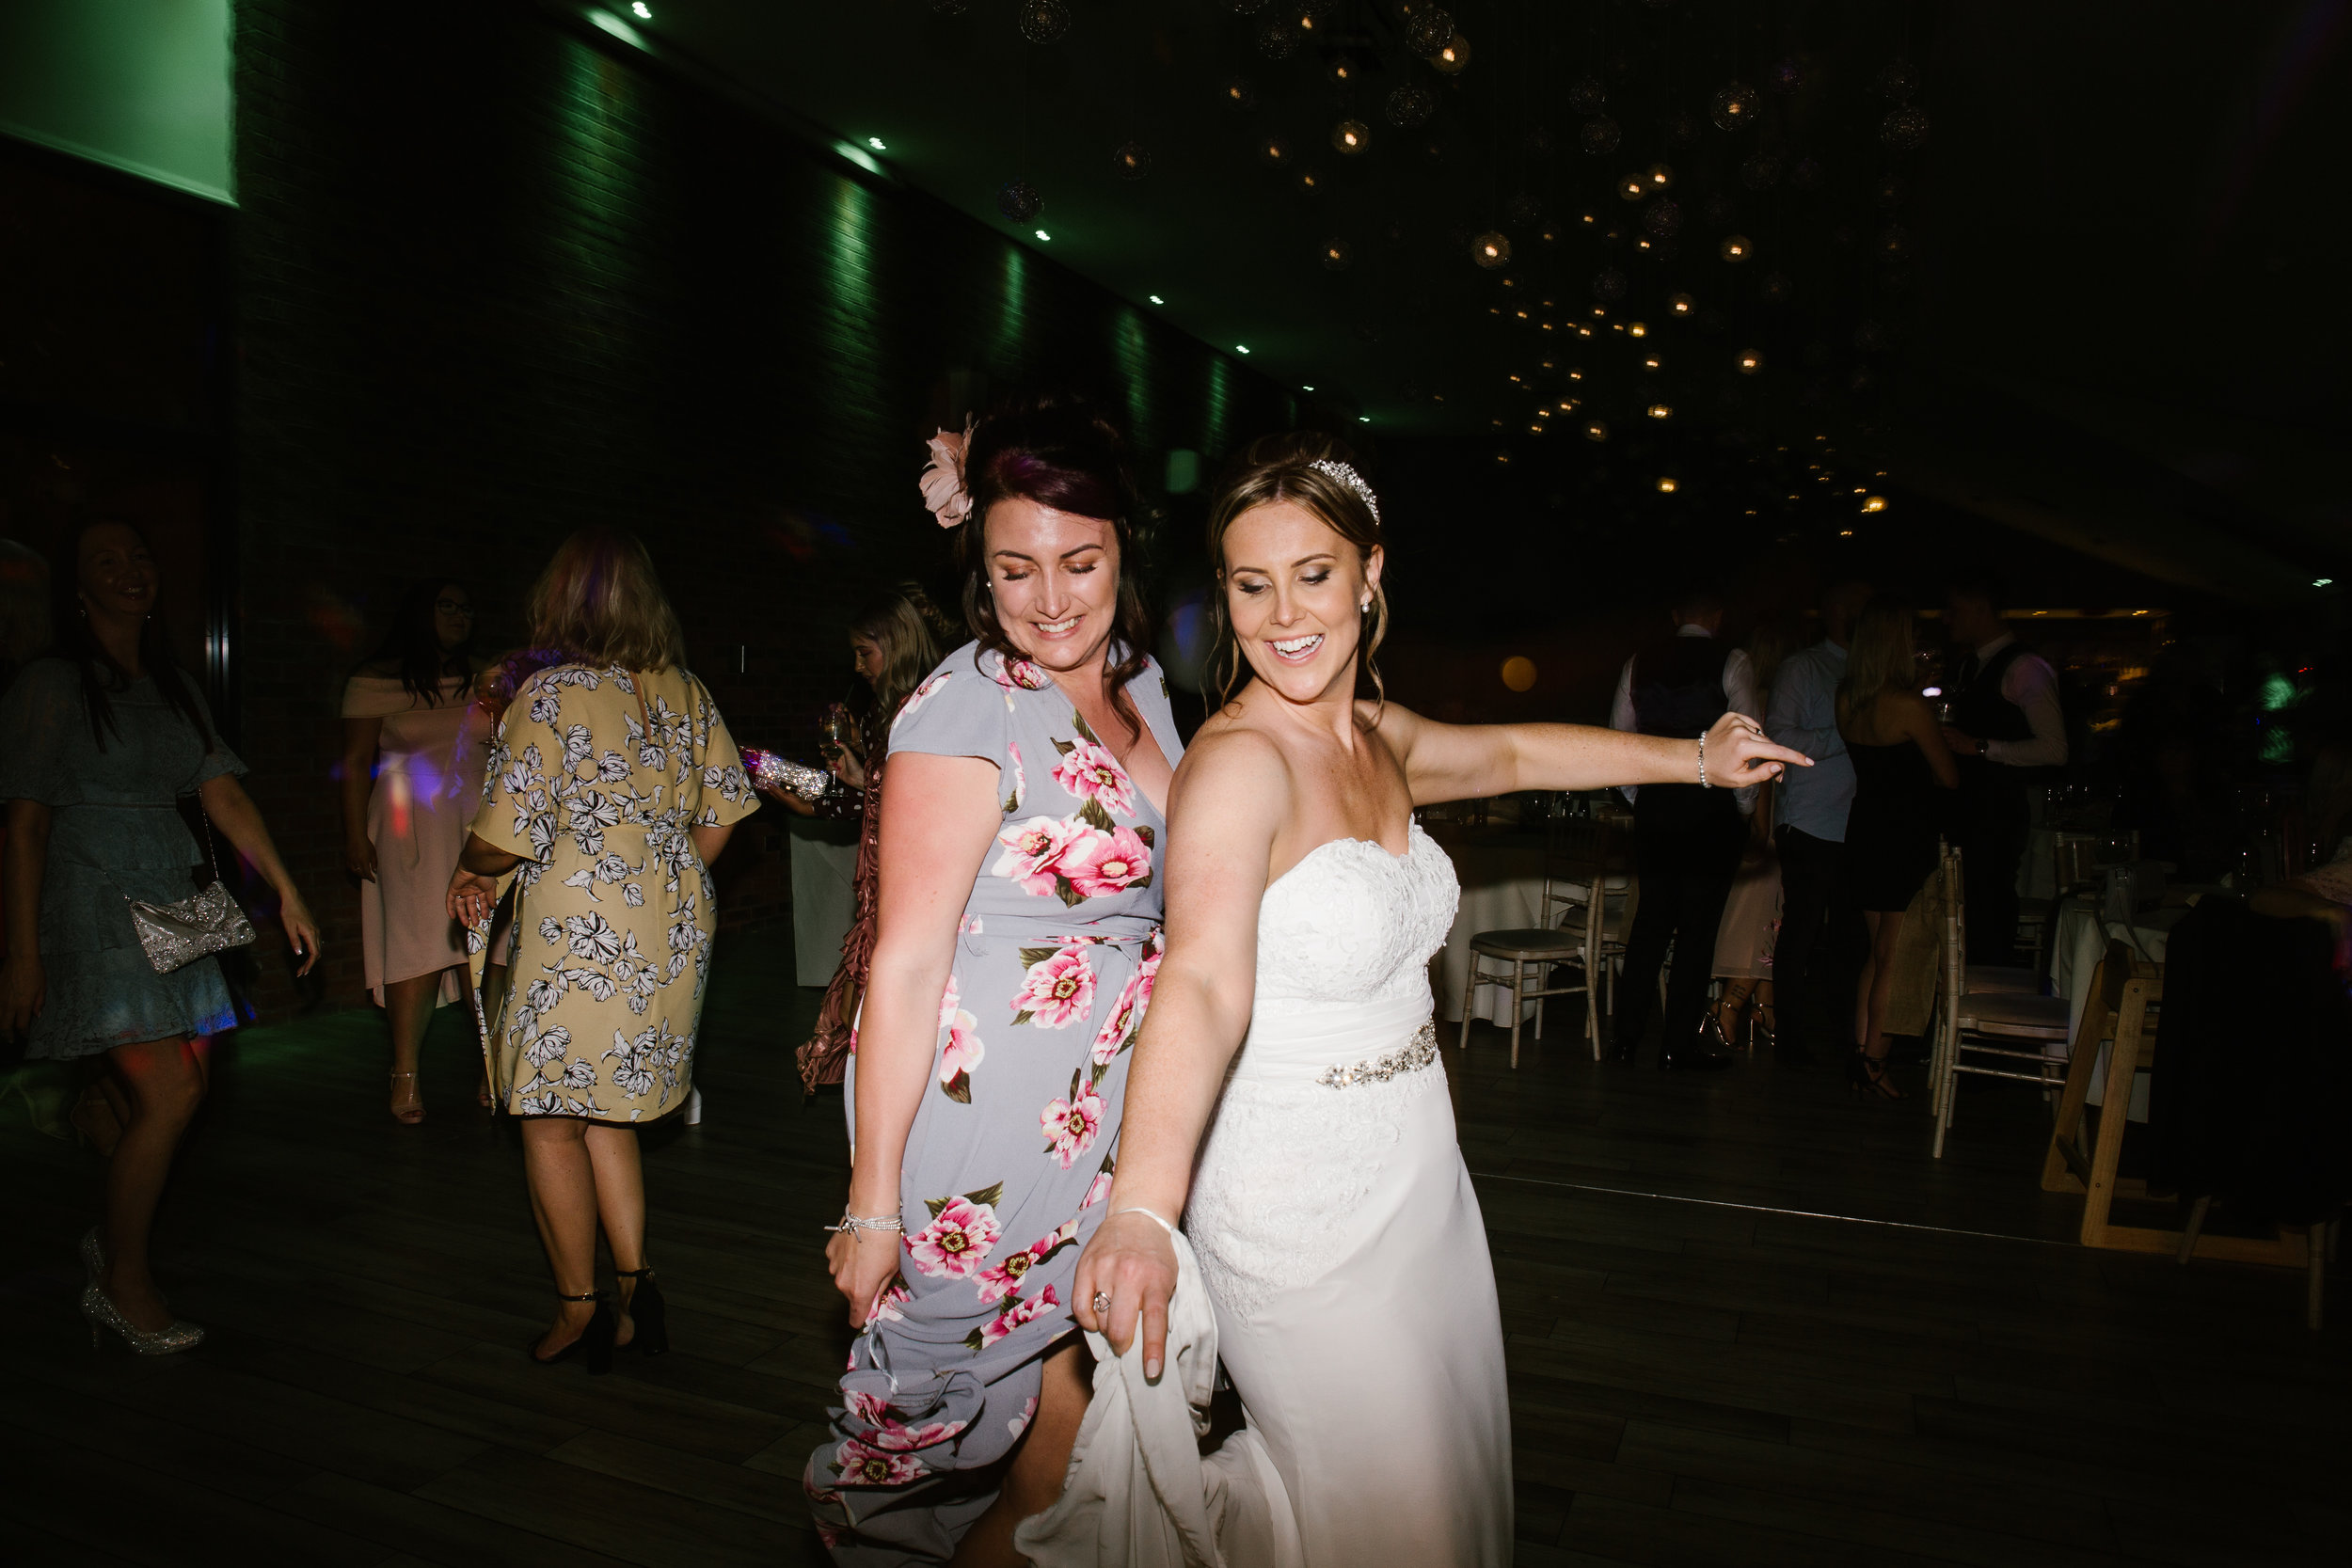 wedding guest dancing with the bride at the wedding party at the boat house in staffordshire